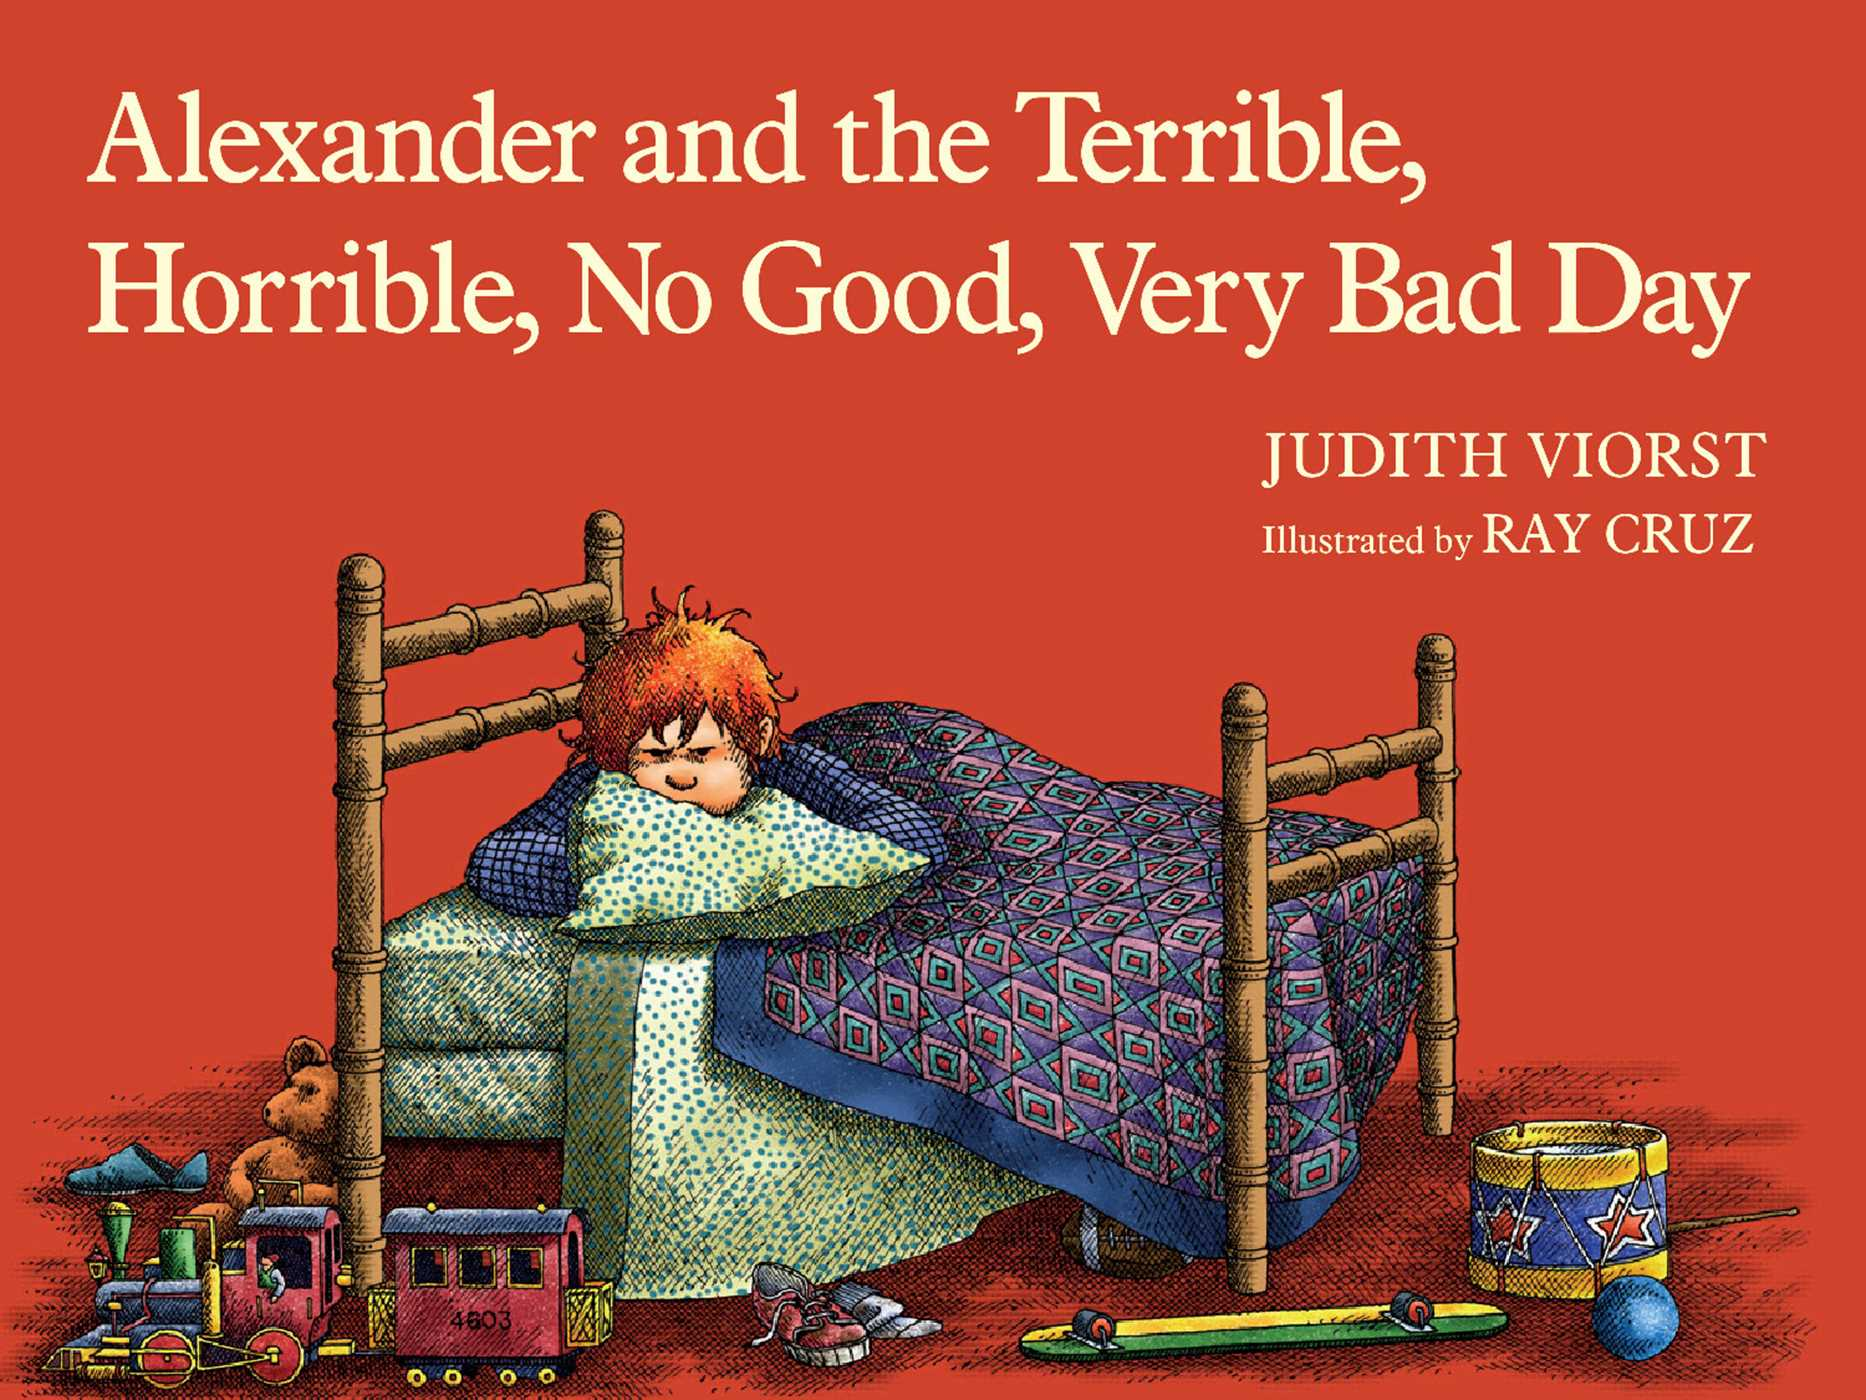 Alexander-and-the-terrible-horrible-no-good-9781442463165_hr